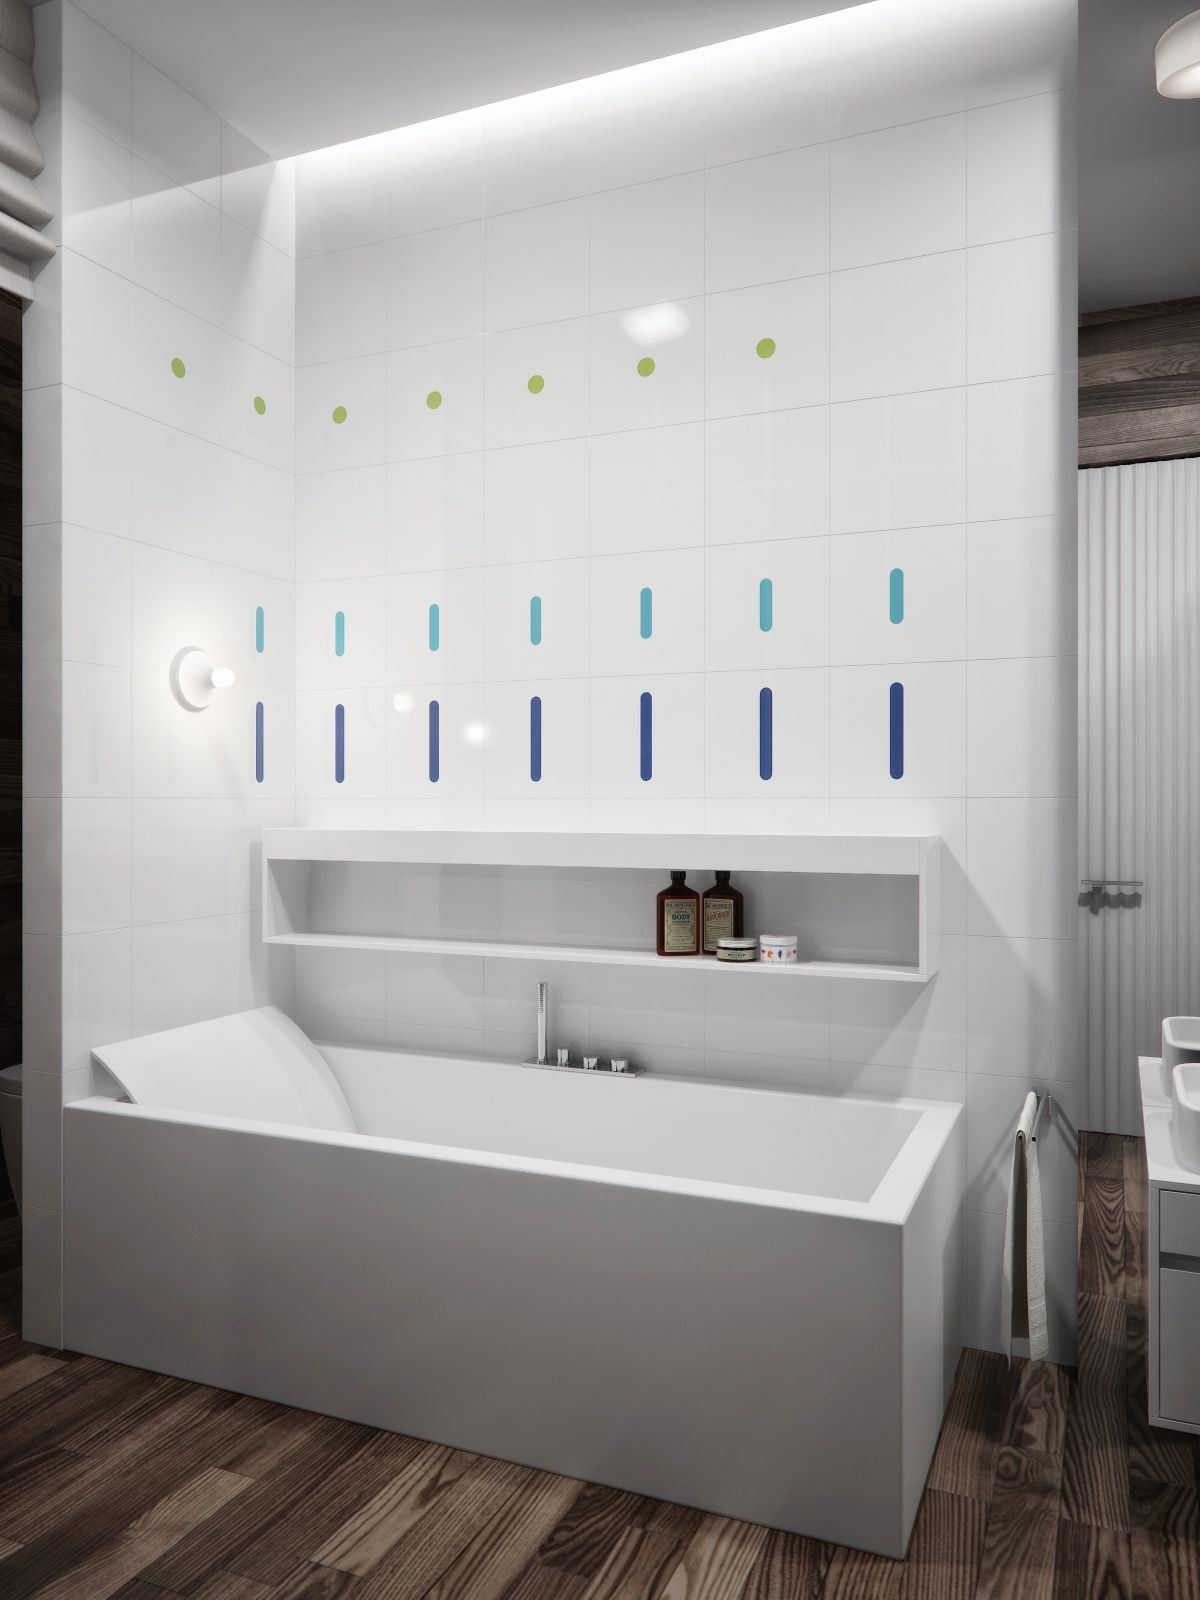 White Tile Bathroom Contemporary Bathroom Decor Ideas Combined With Wooden Accents